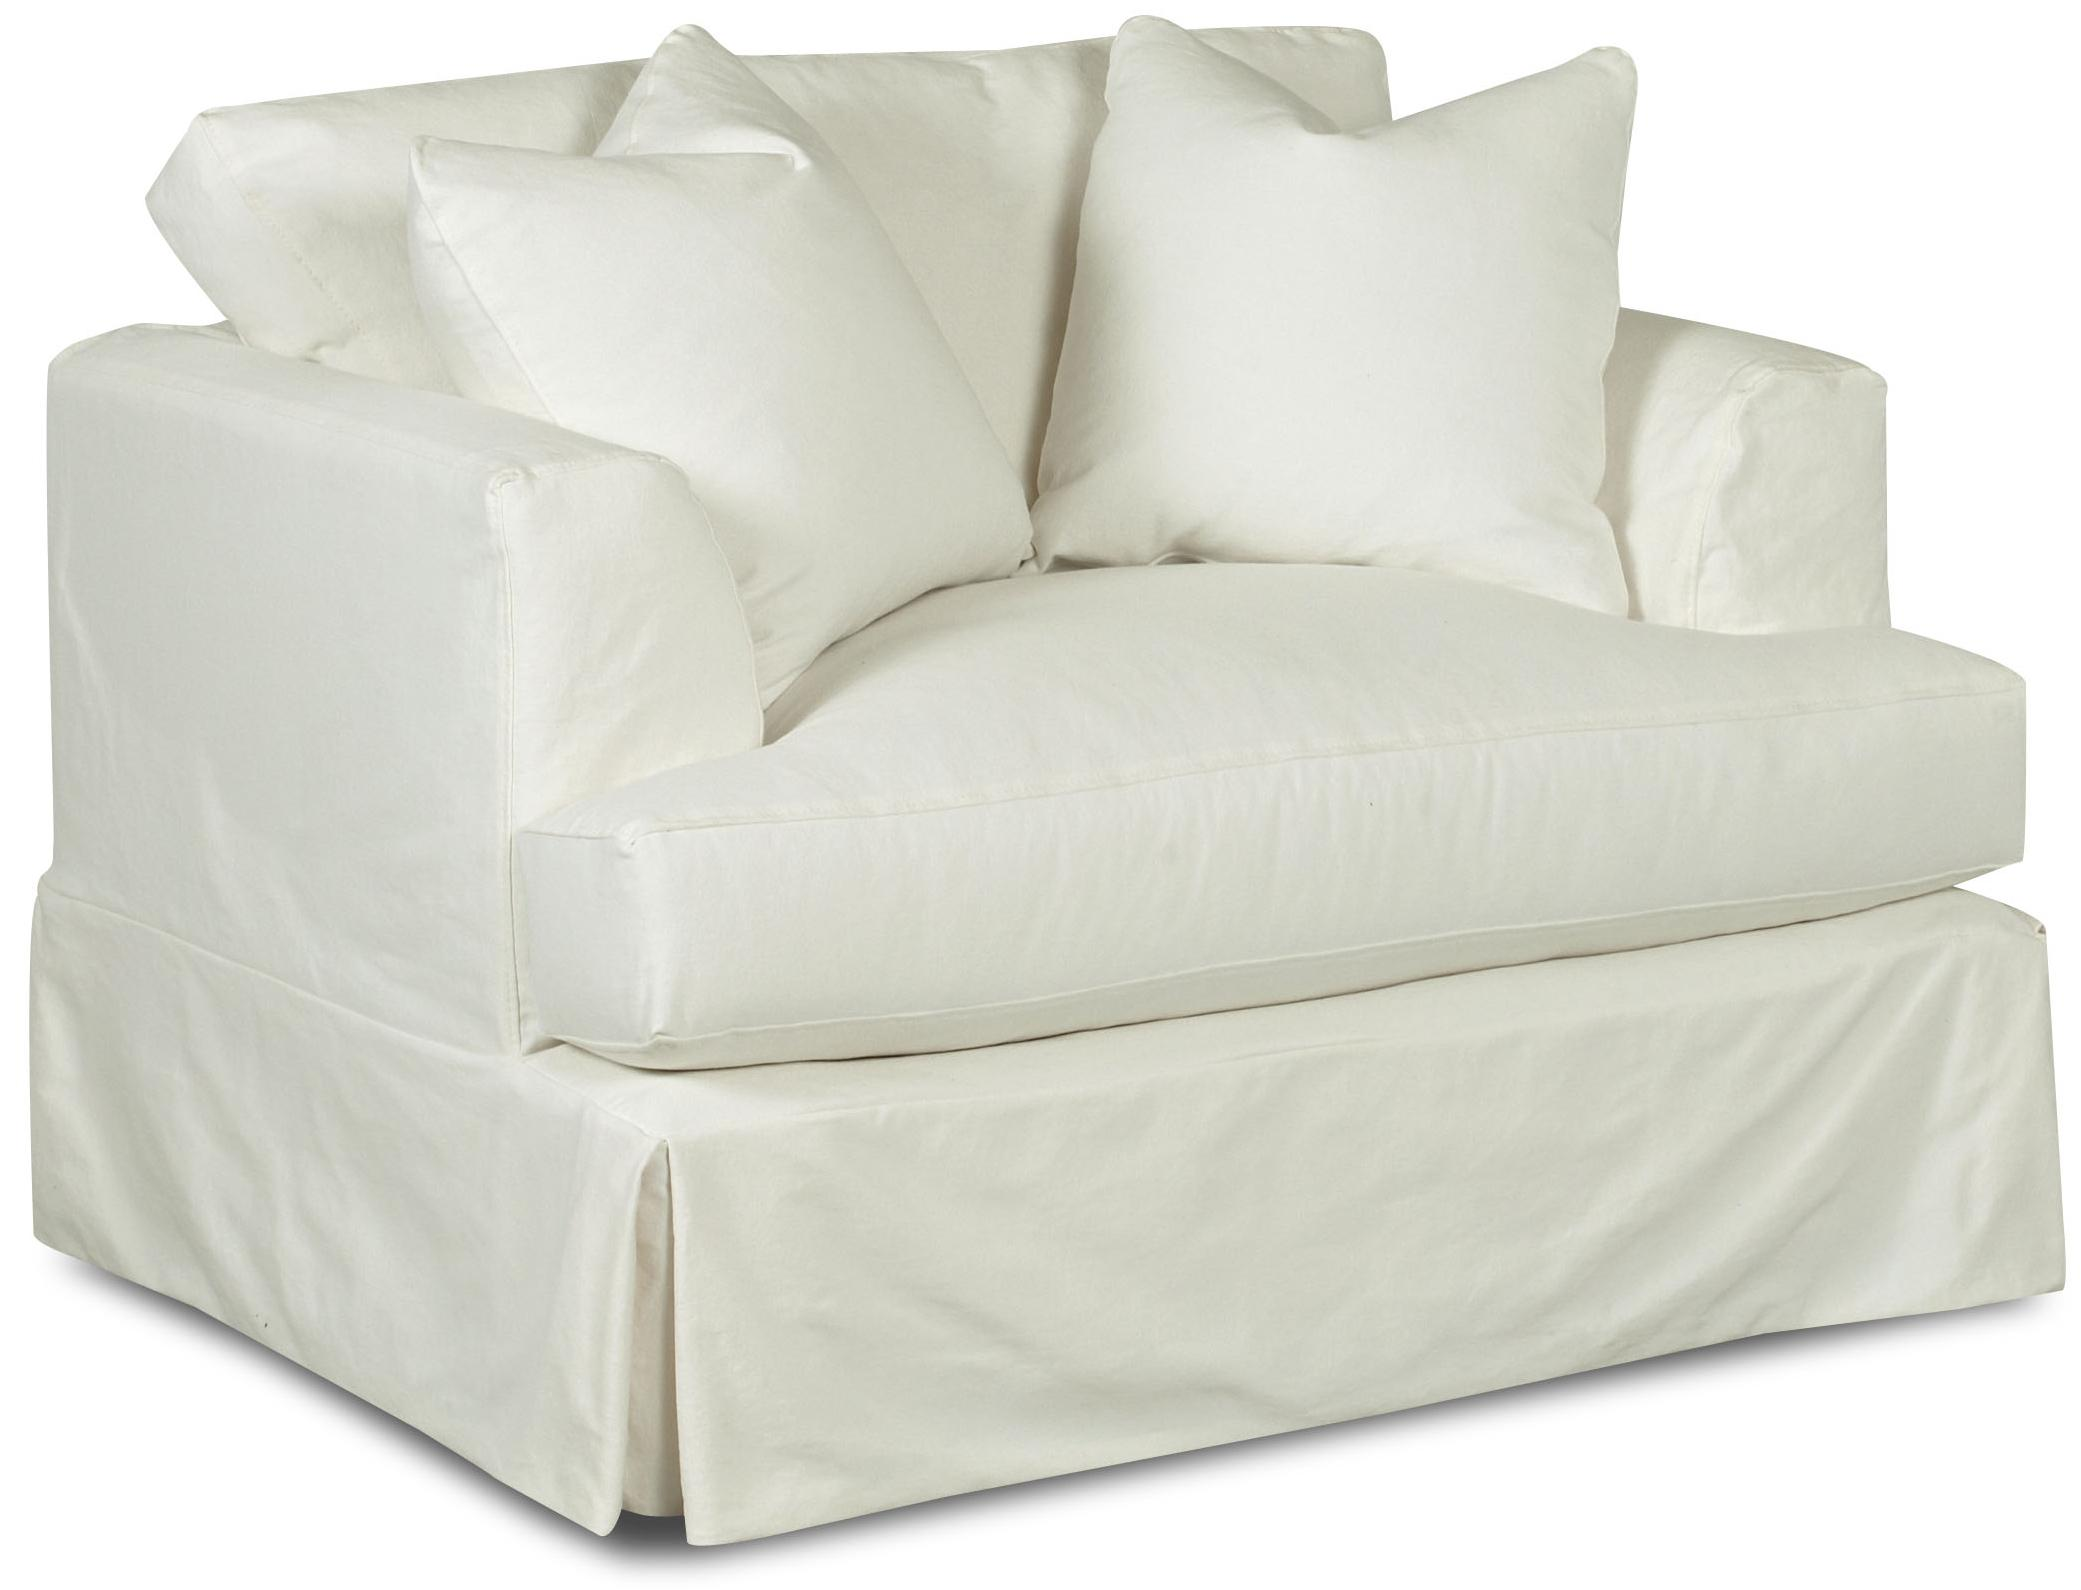 Furniture Tar Slipcovers Slipcovers For Sofa